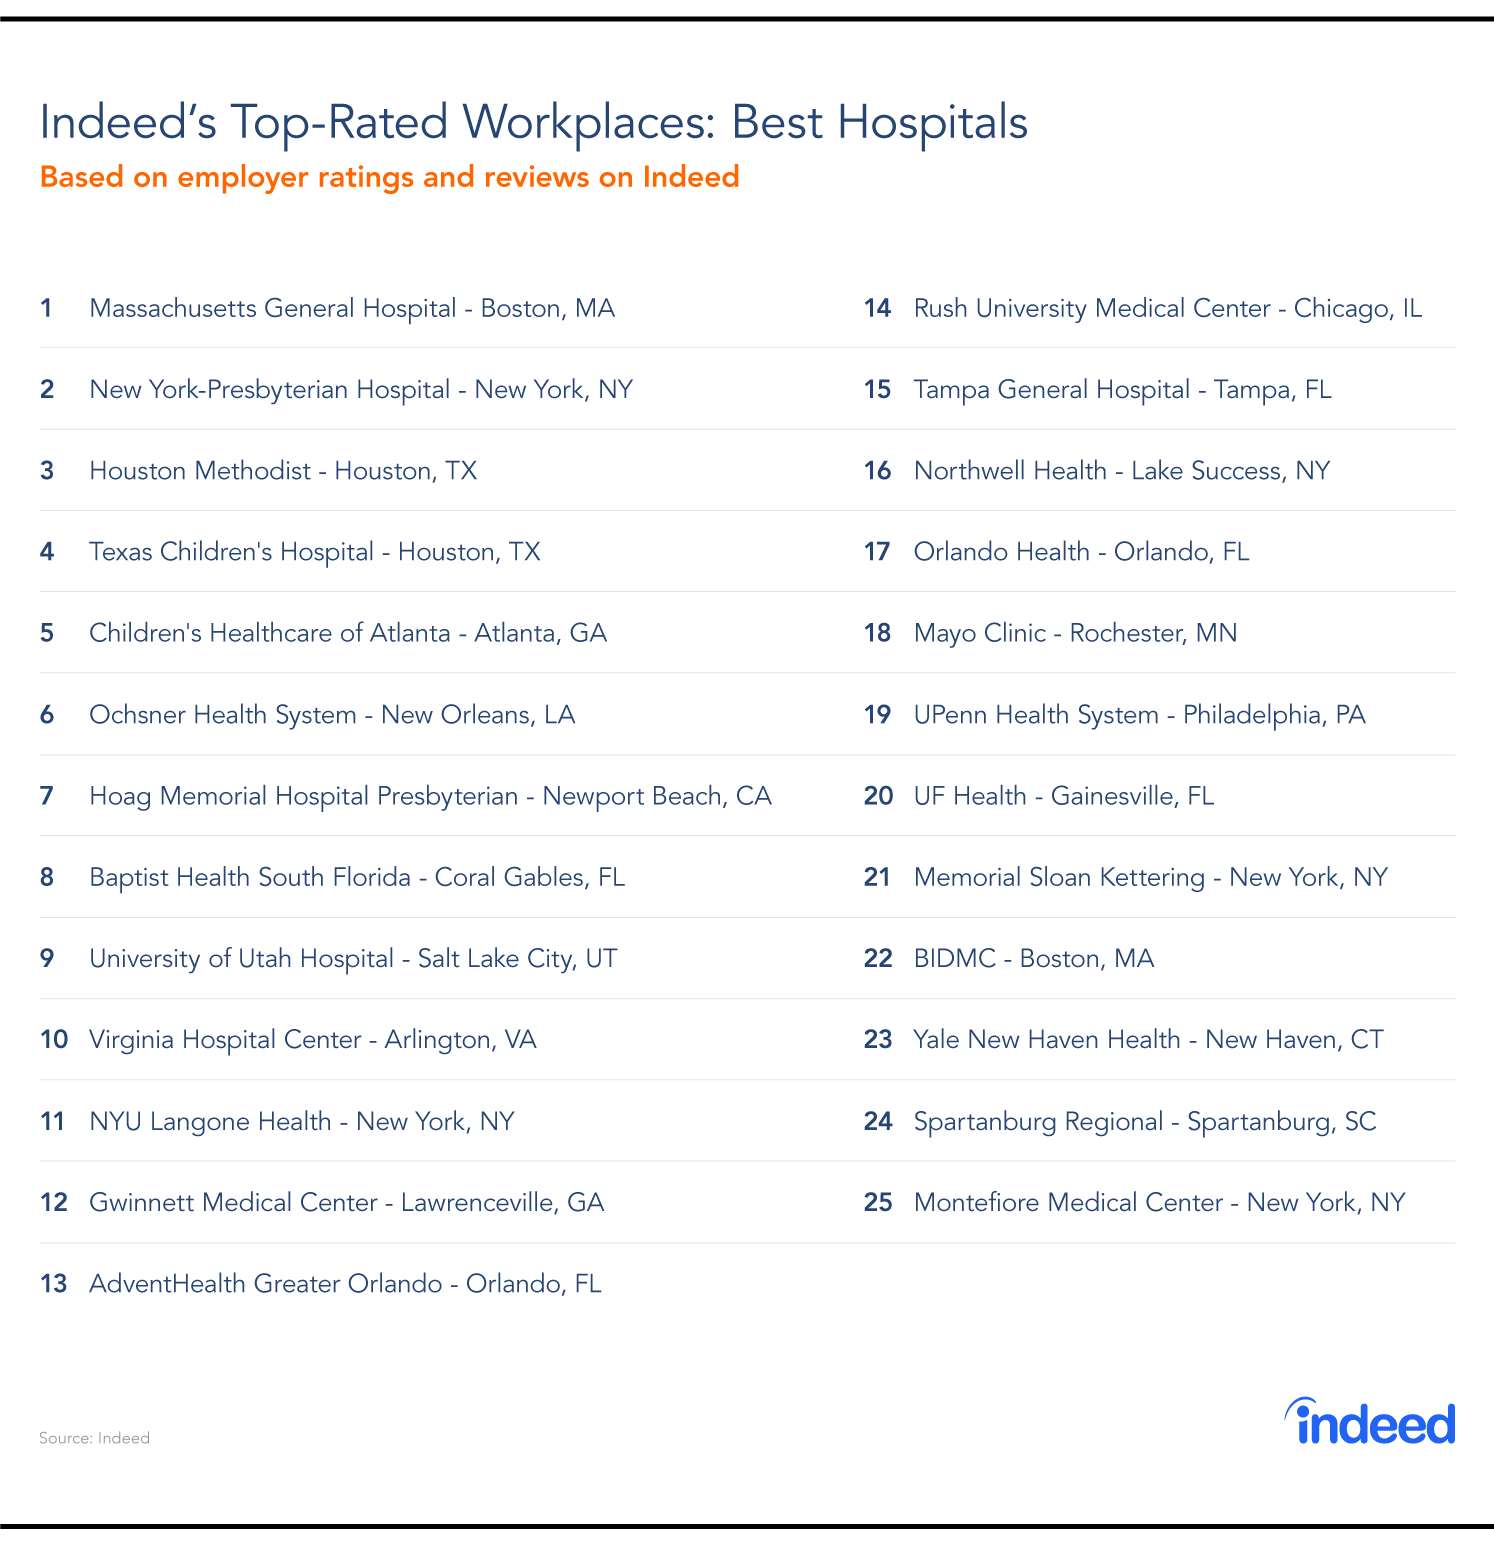 The 25 top-rated hospitals around the United States to work for in the year 2019.